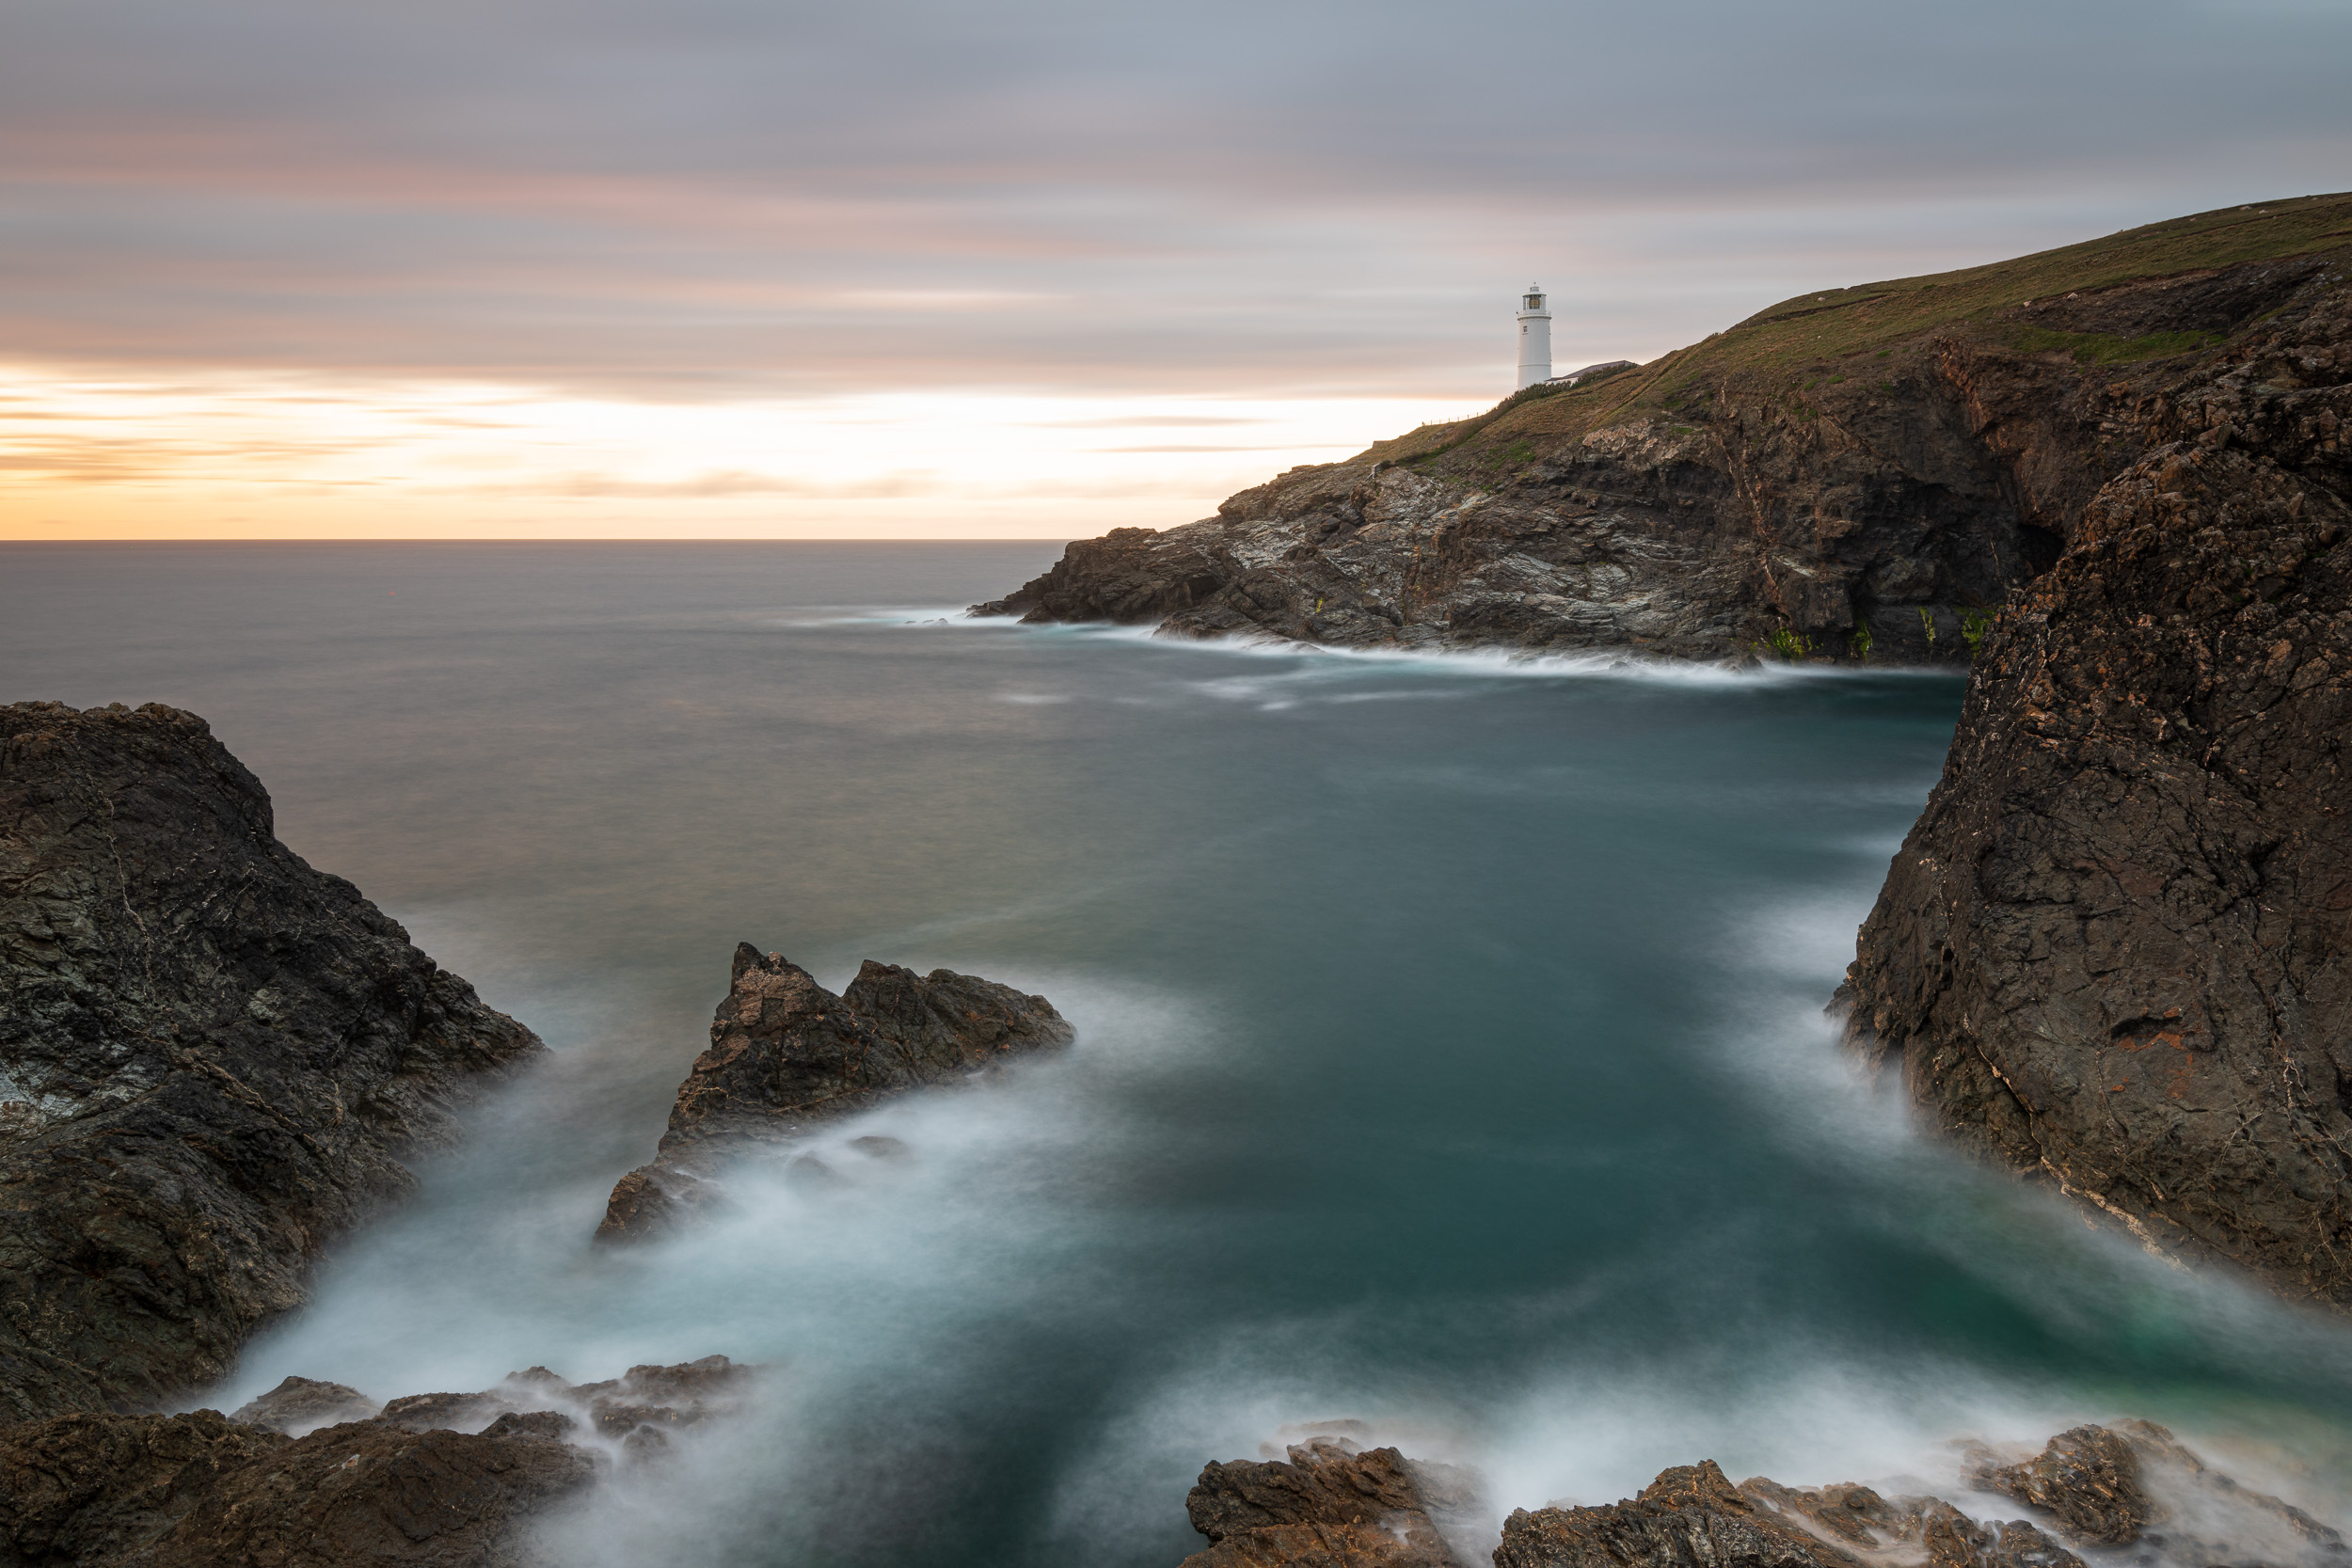 Tricky Trevose Head, Cornwall  - Nikon D850, Nikkor 16-35mm f/4 at 22mm, f/11, 90 seconds at ISO 64.